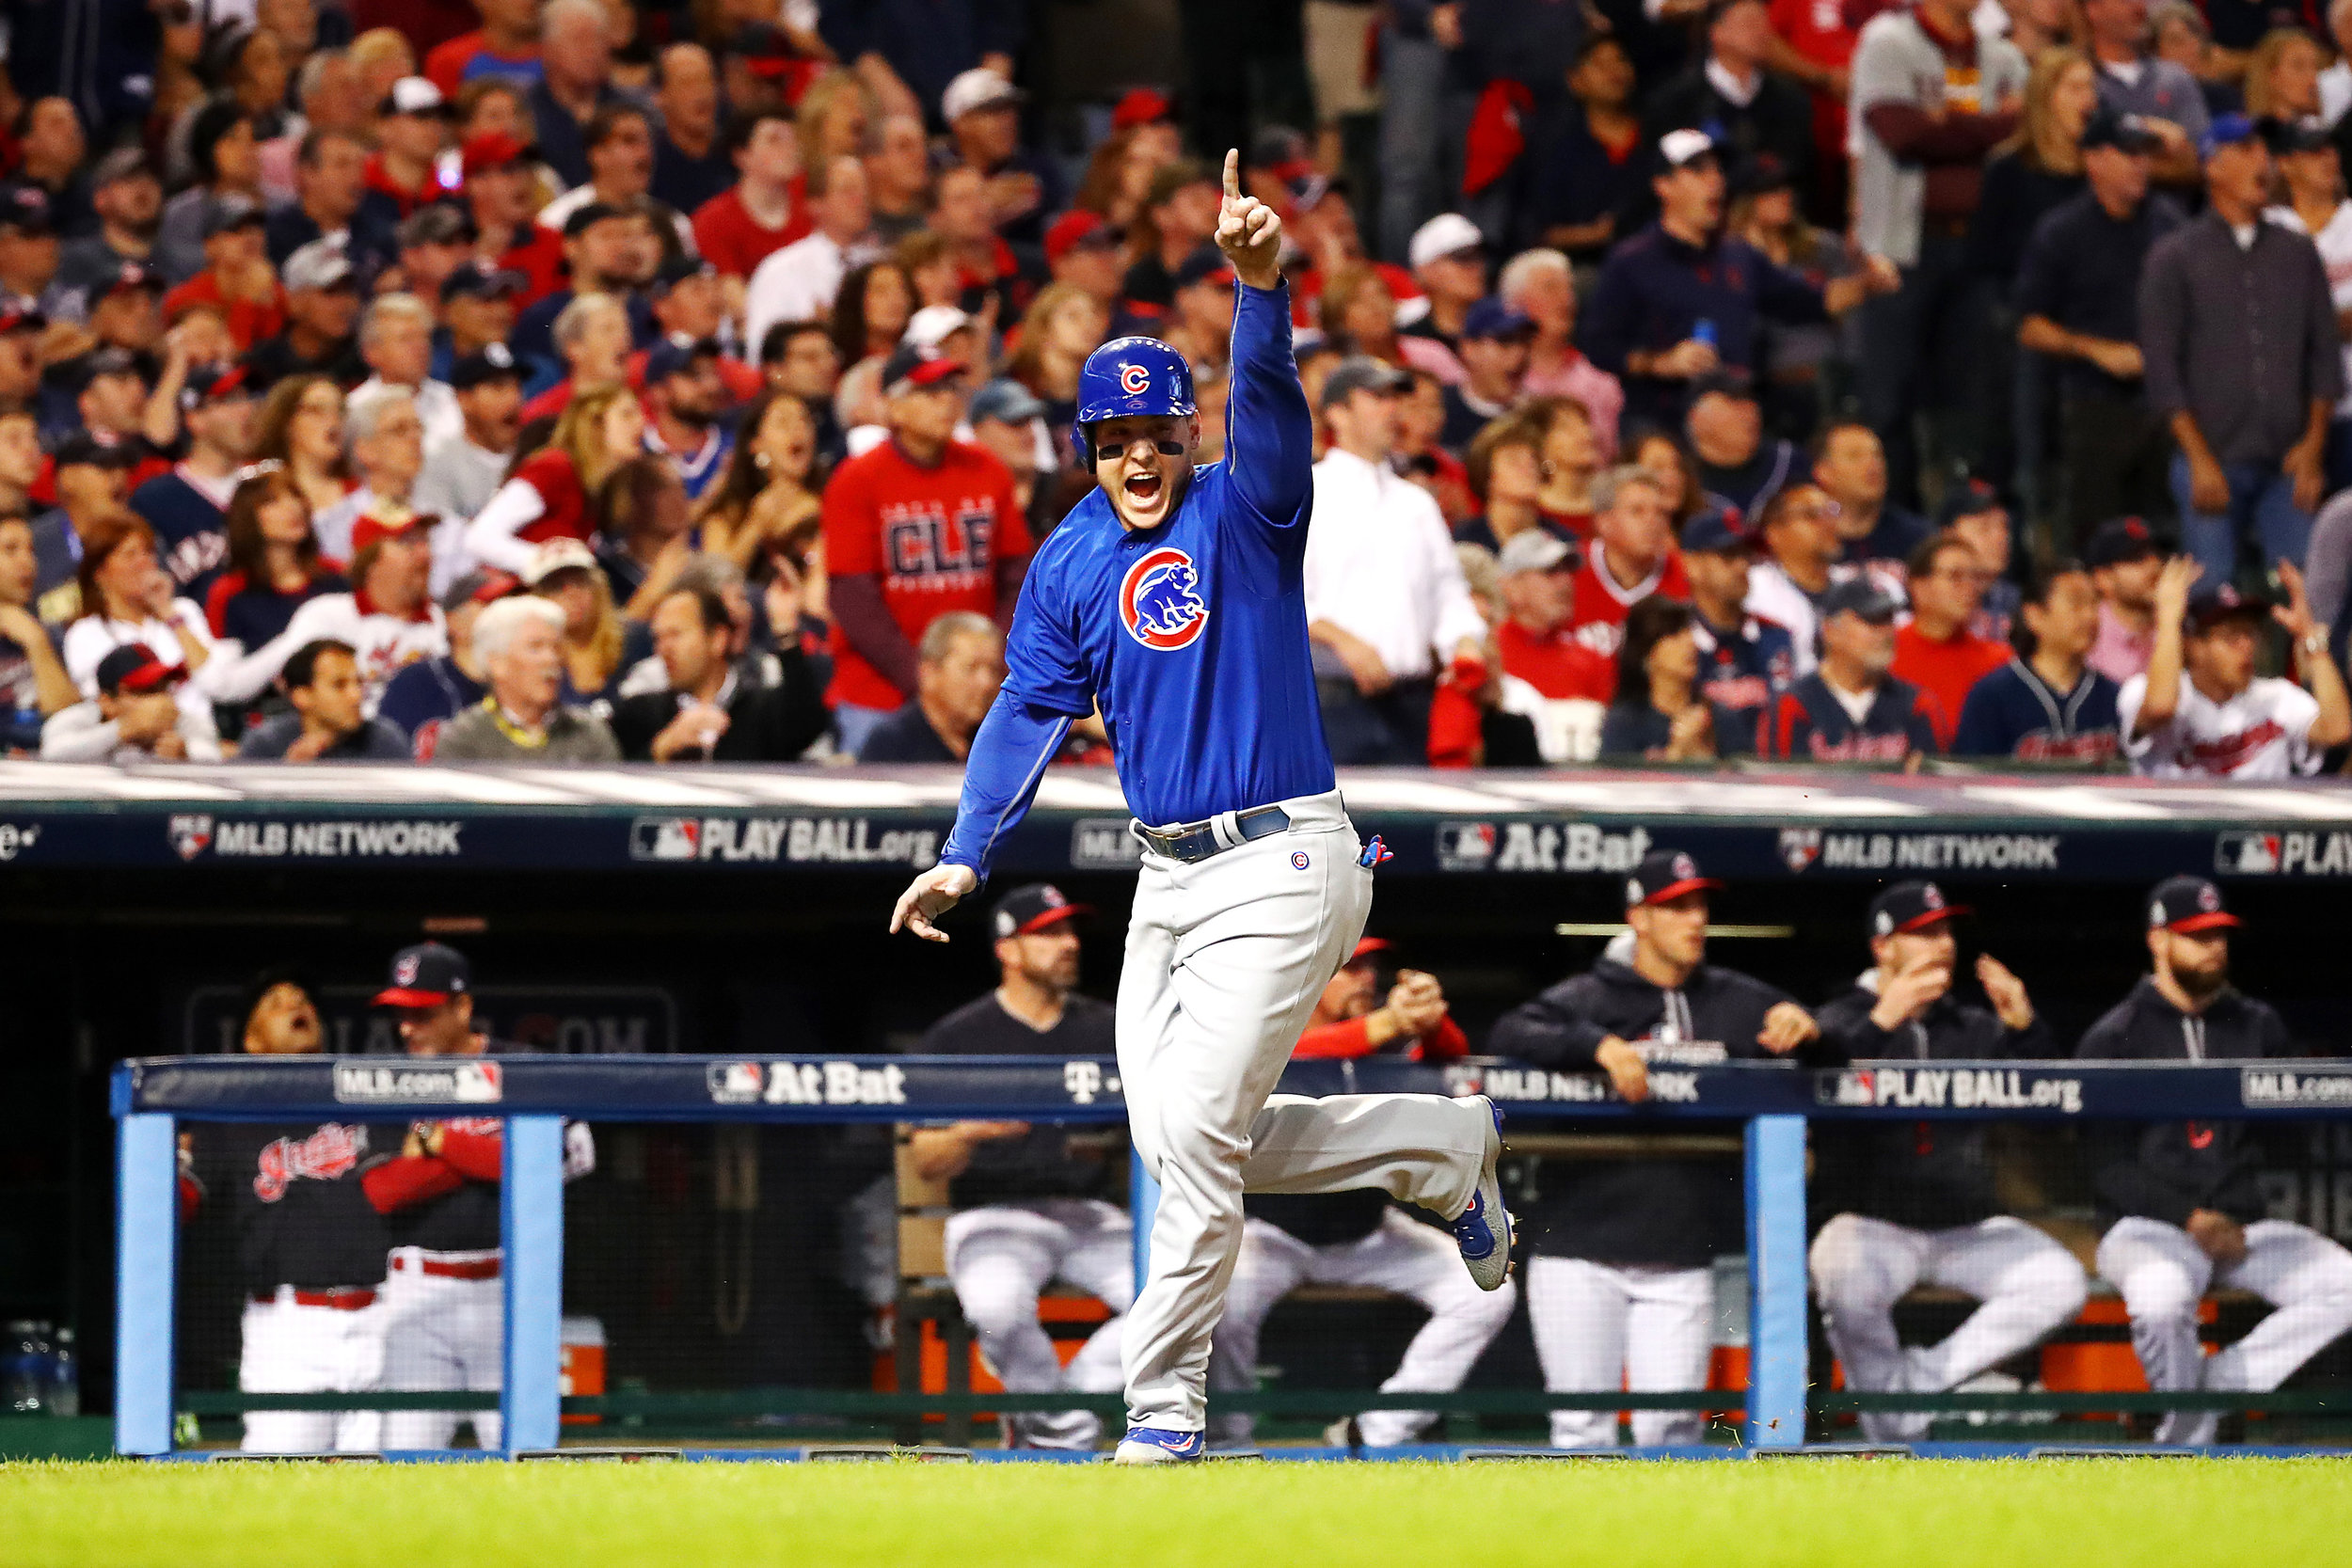 CLEVELAND, OH - NOVEMBER 01: Anthony Rizzo #44 of the Chicago Cubs celebrates after Addison Russell #27 (not pictured) hit a two-run RBI double during the first inning against the Cleveland Indians in Game Six of the 2016 World Series at Progressive Field on November 1, 2016 in Cleveland, Ohio. (Photo by Tim Bradbury/Getty Images)